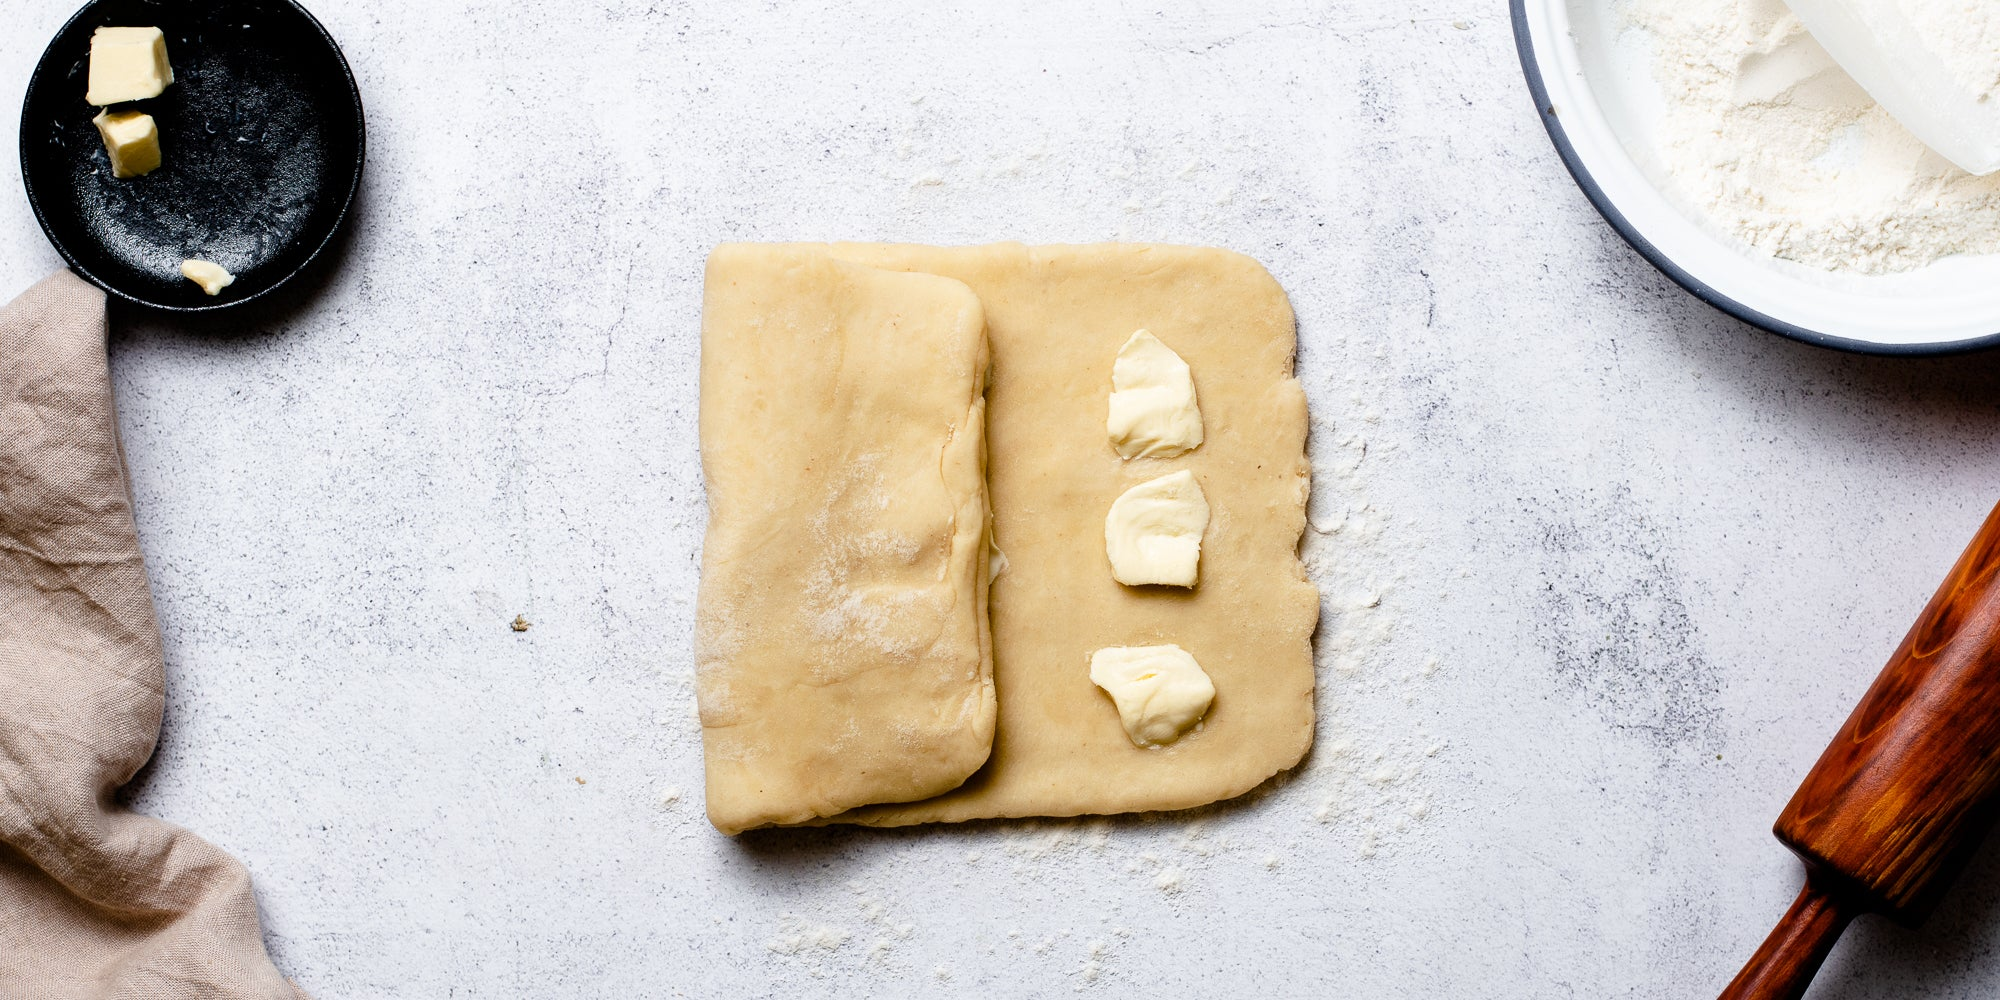 Puff Pastry rolled out with knobs of butter ready to fold into the dough. Next to a rolling pin, bowl of flour and dish of butter